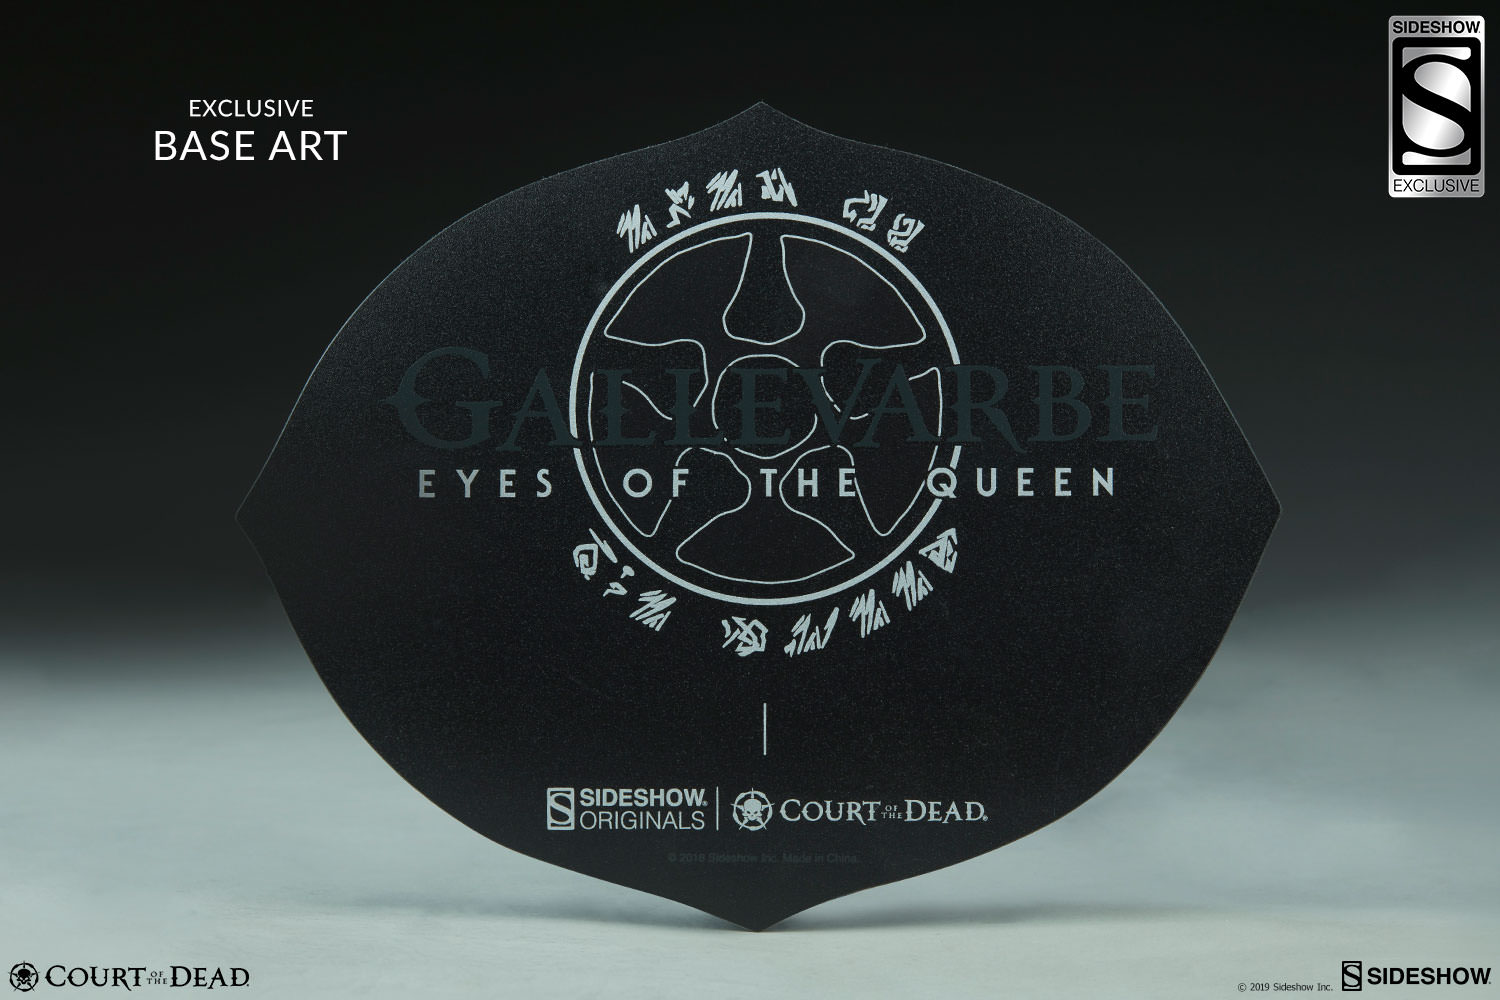 court-of-the-dead-gallevarbe-eyes-of-the-queen-premium-format-figure-sideshow-30.jpg